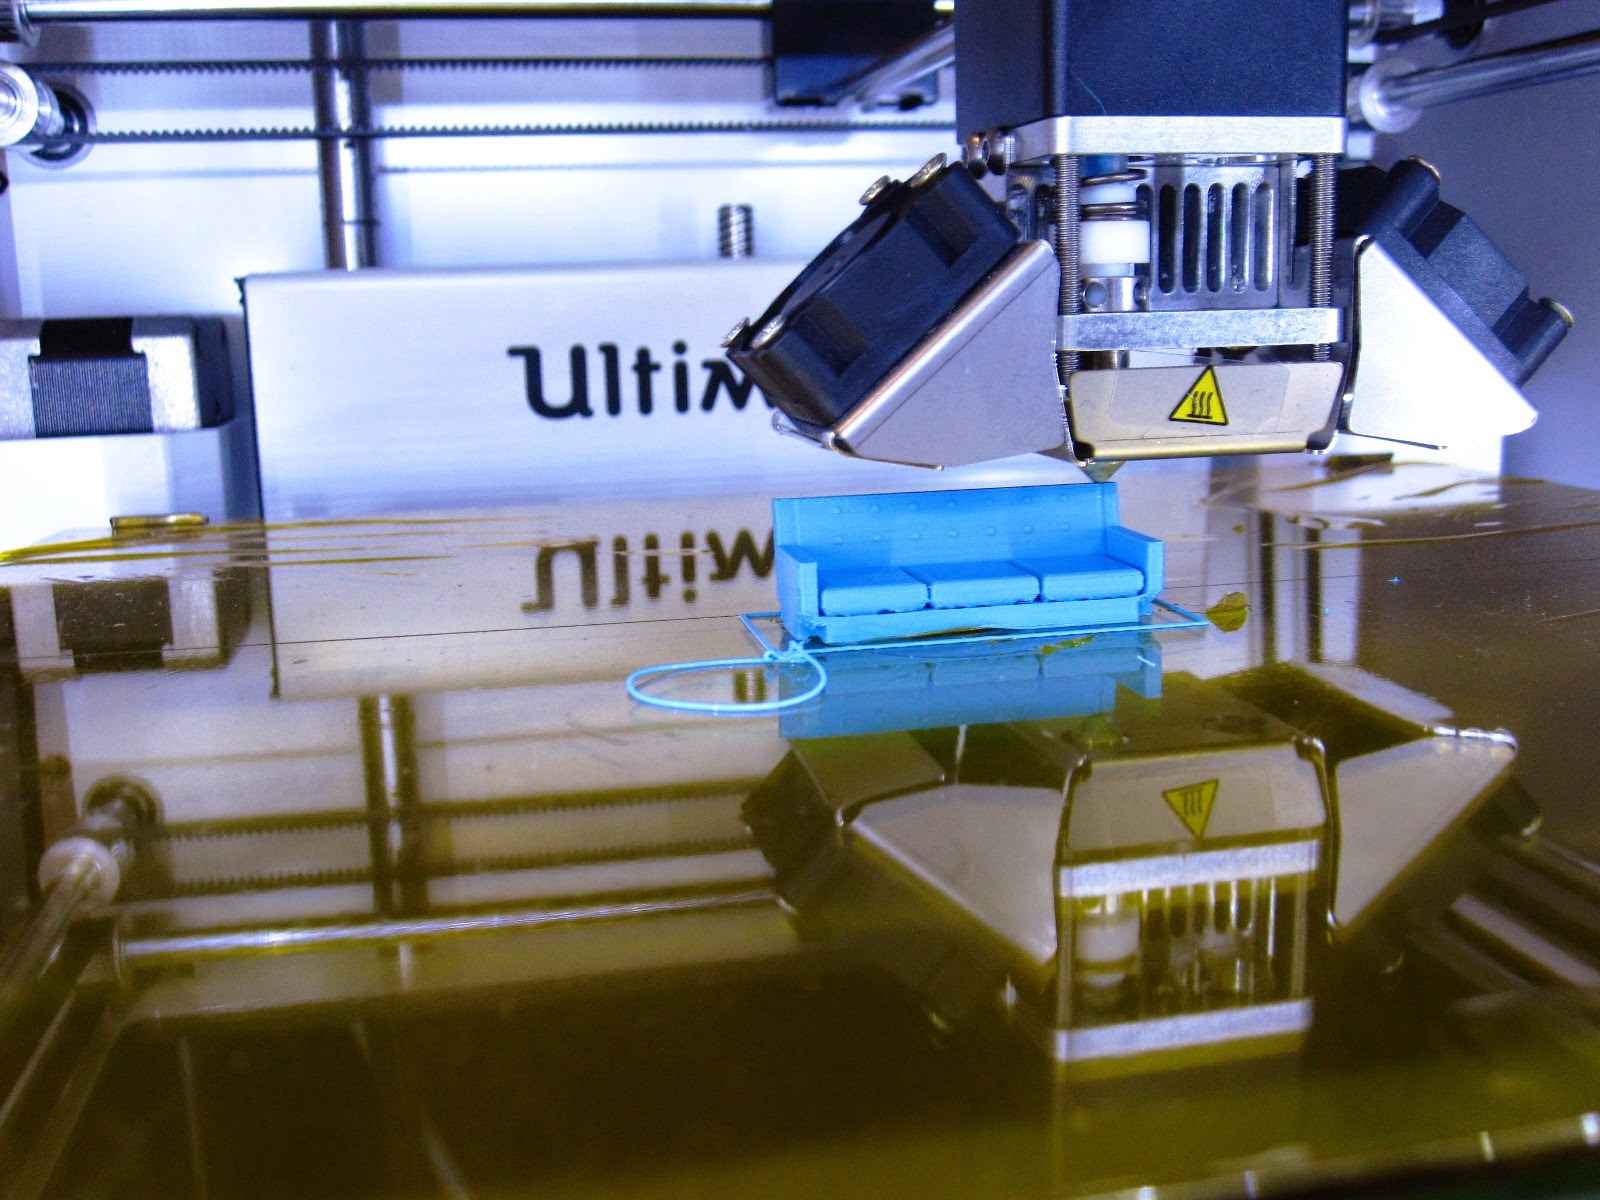 3D printer printing a miniature sofa.